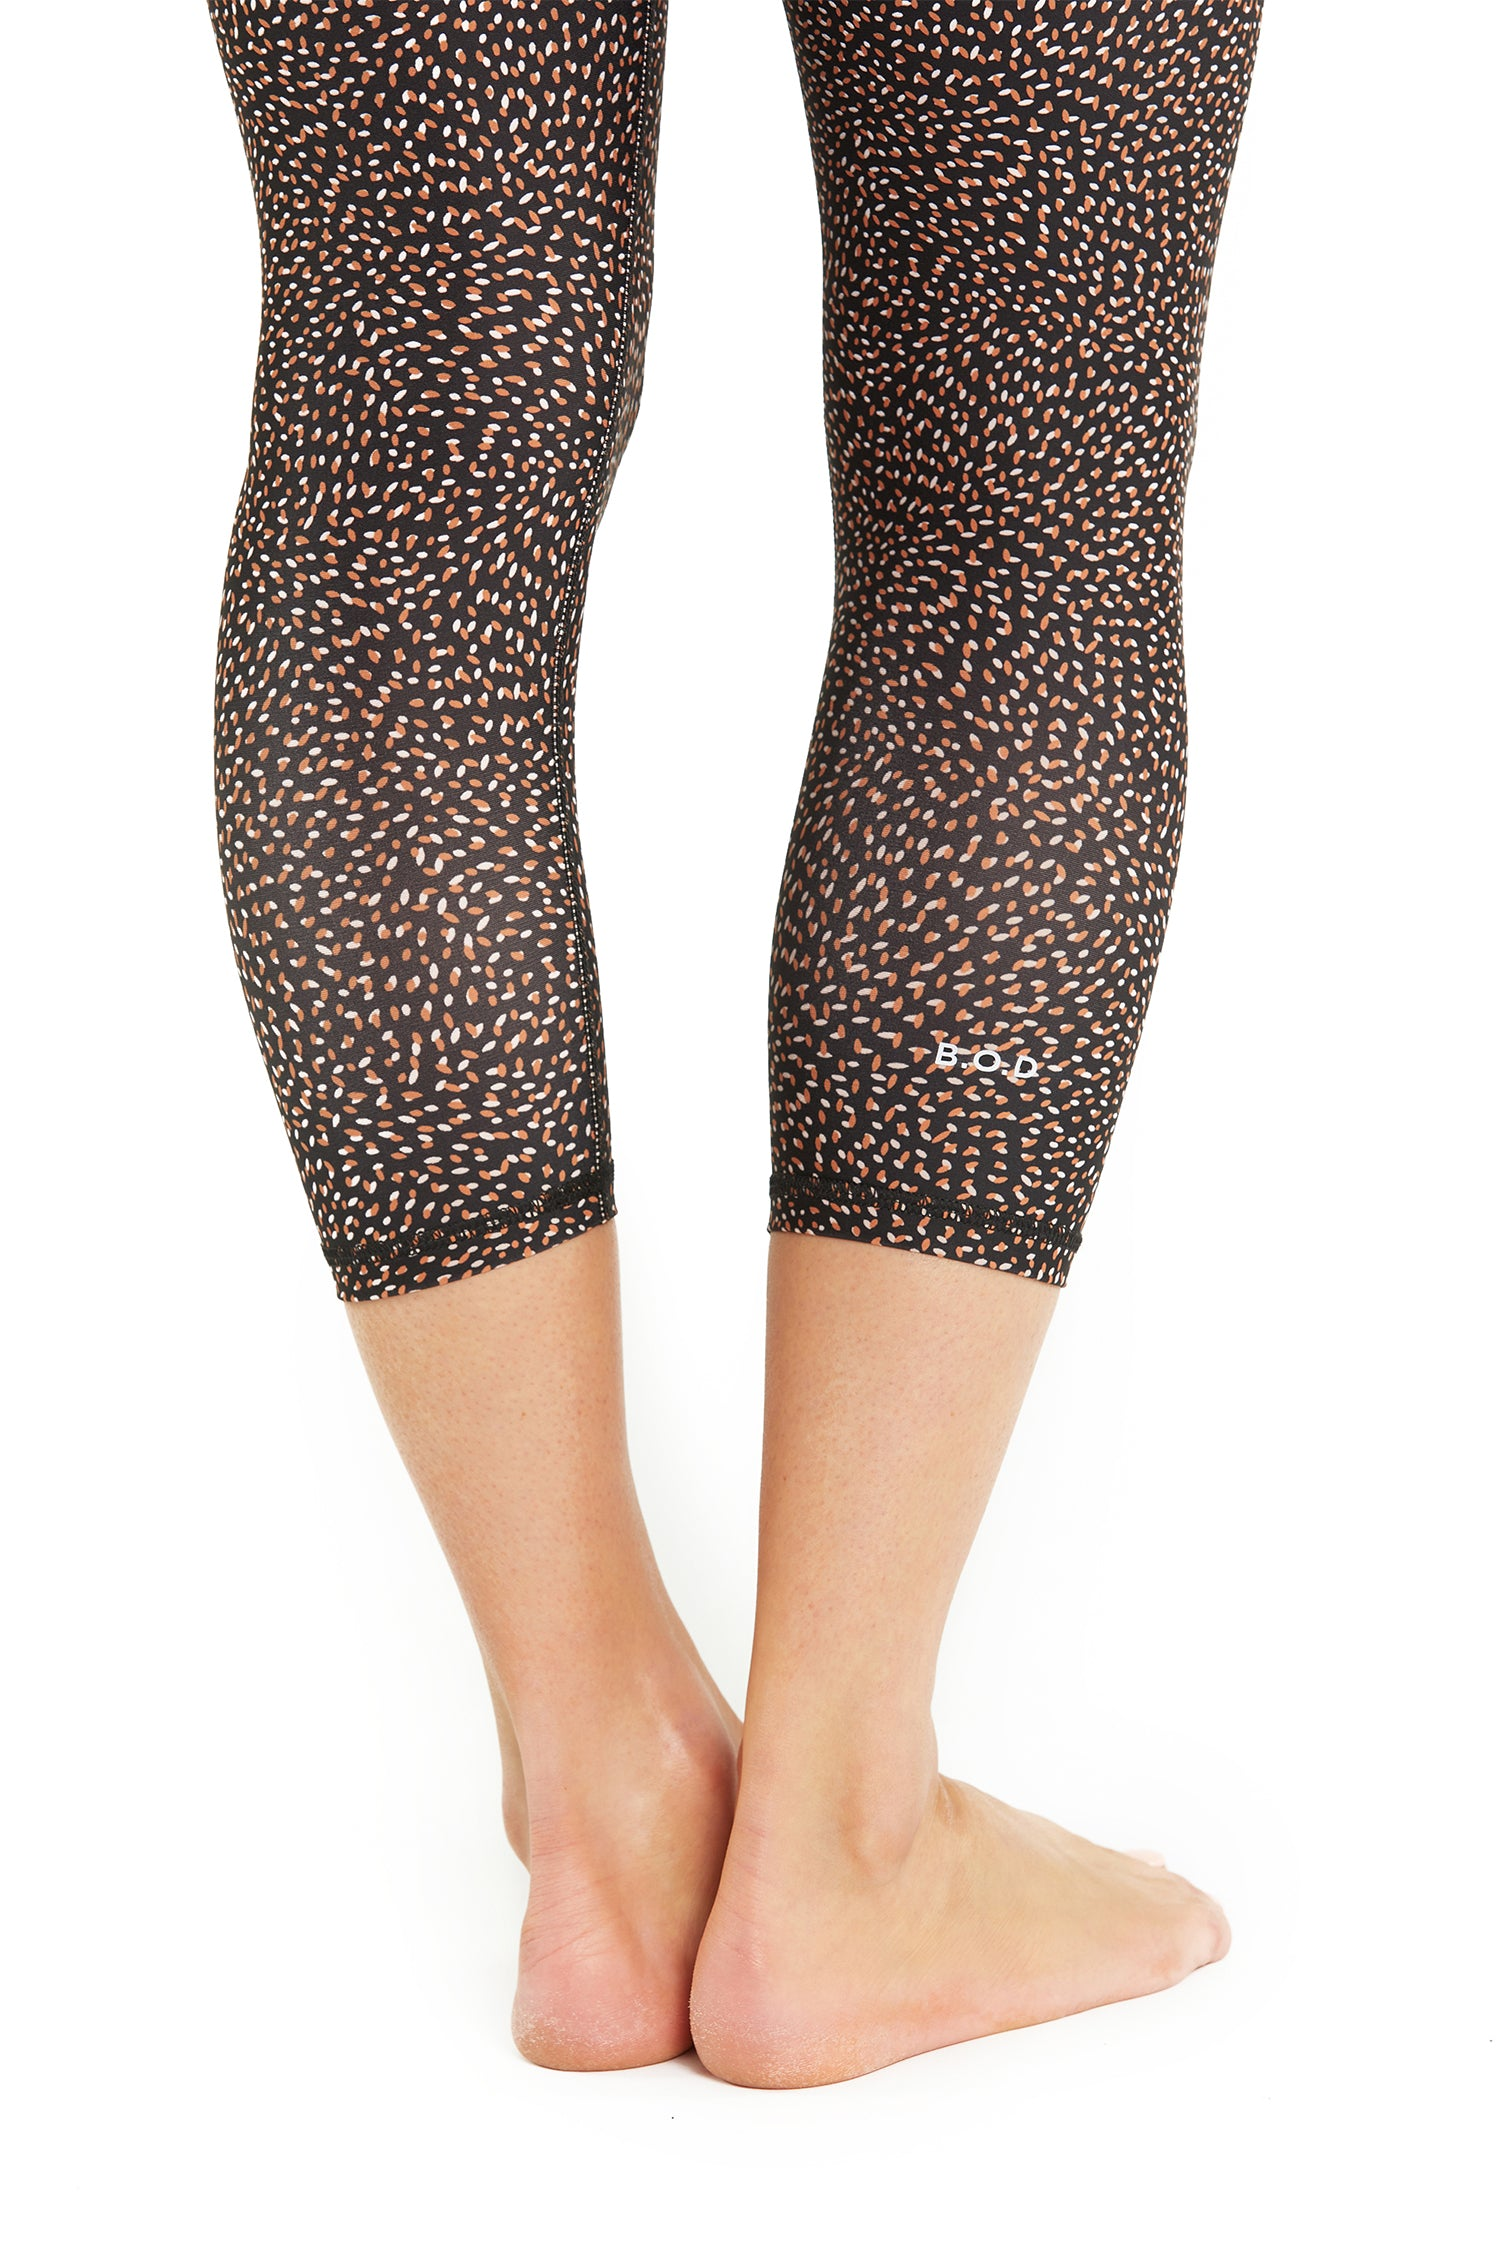 Sahara Capri Leggings